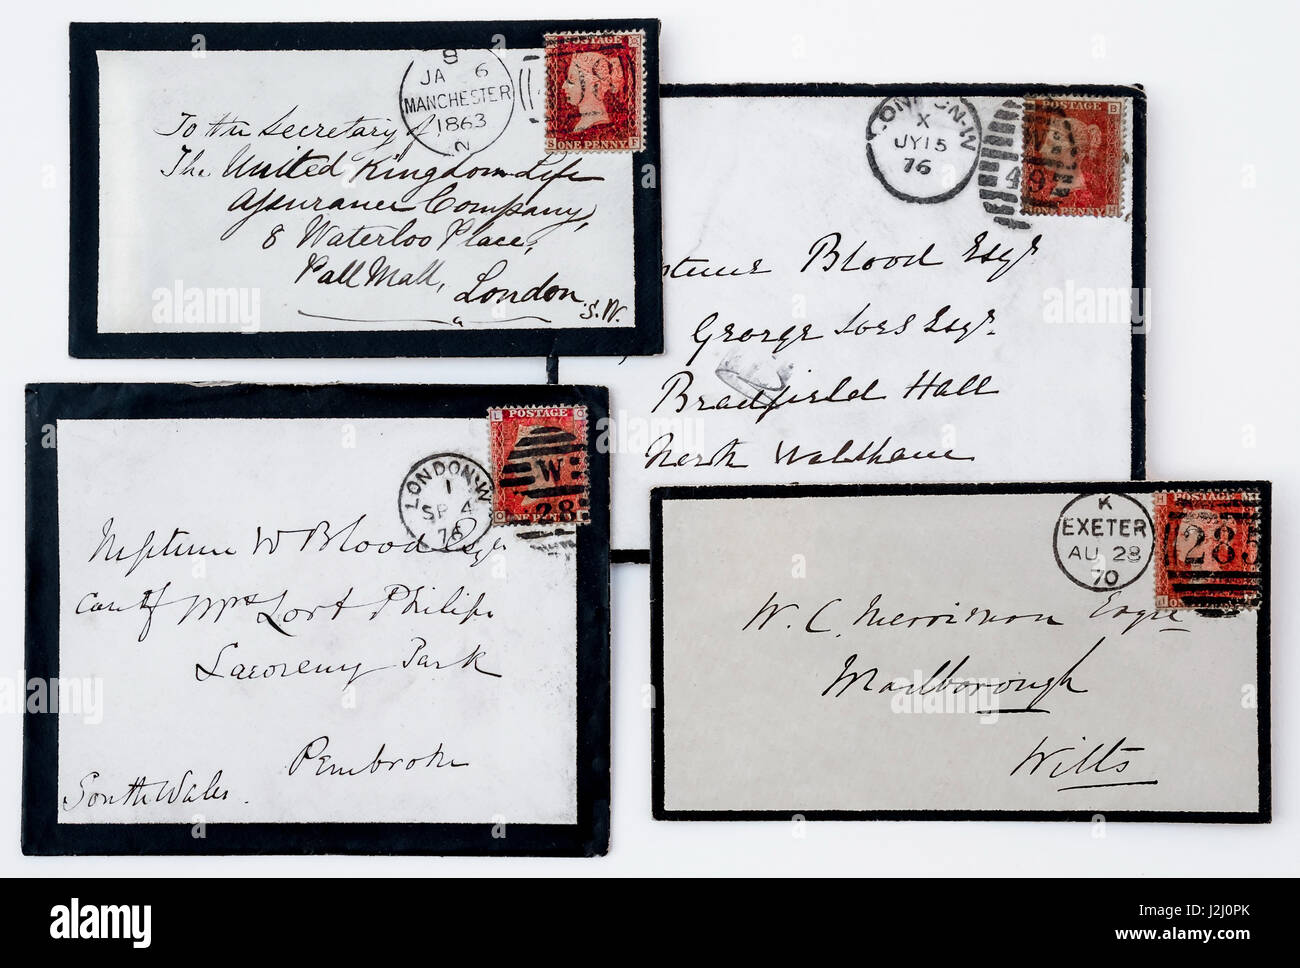 Hand-written mourning envelopes with Queen Victoria 1d red stamps. - Stock Image